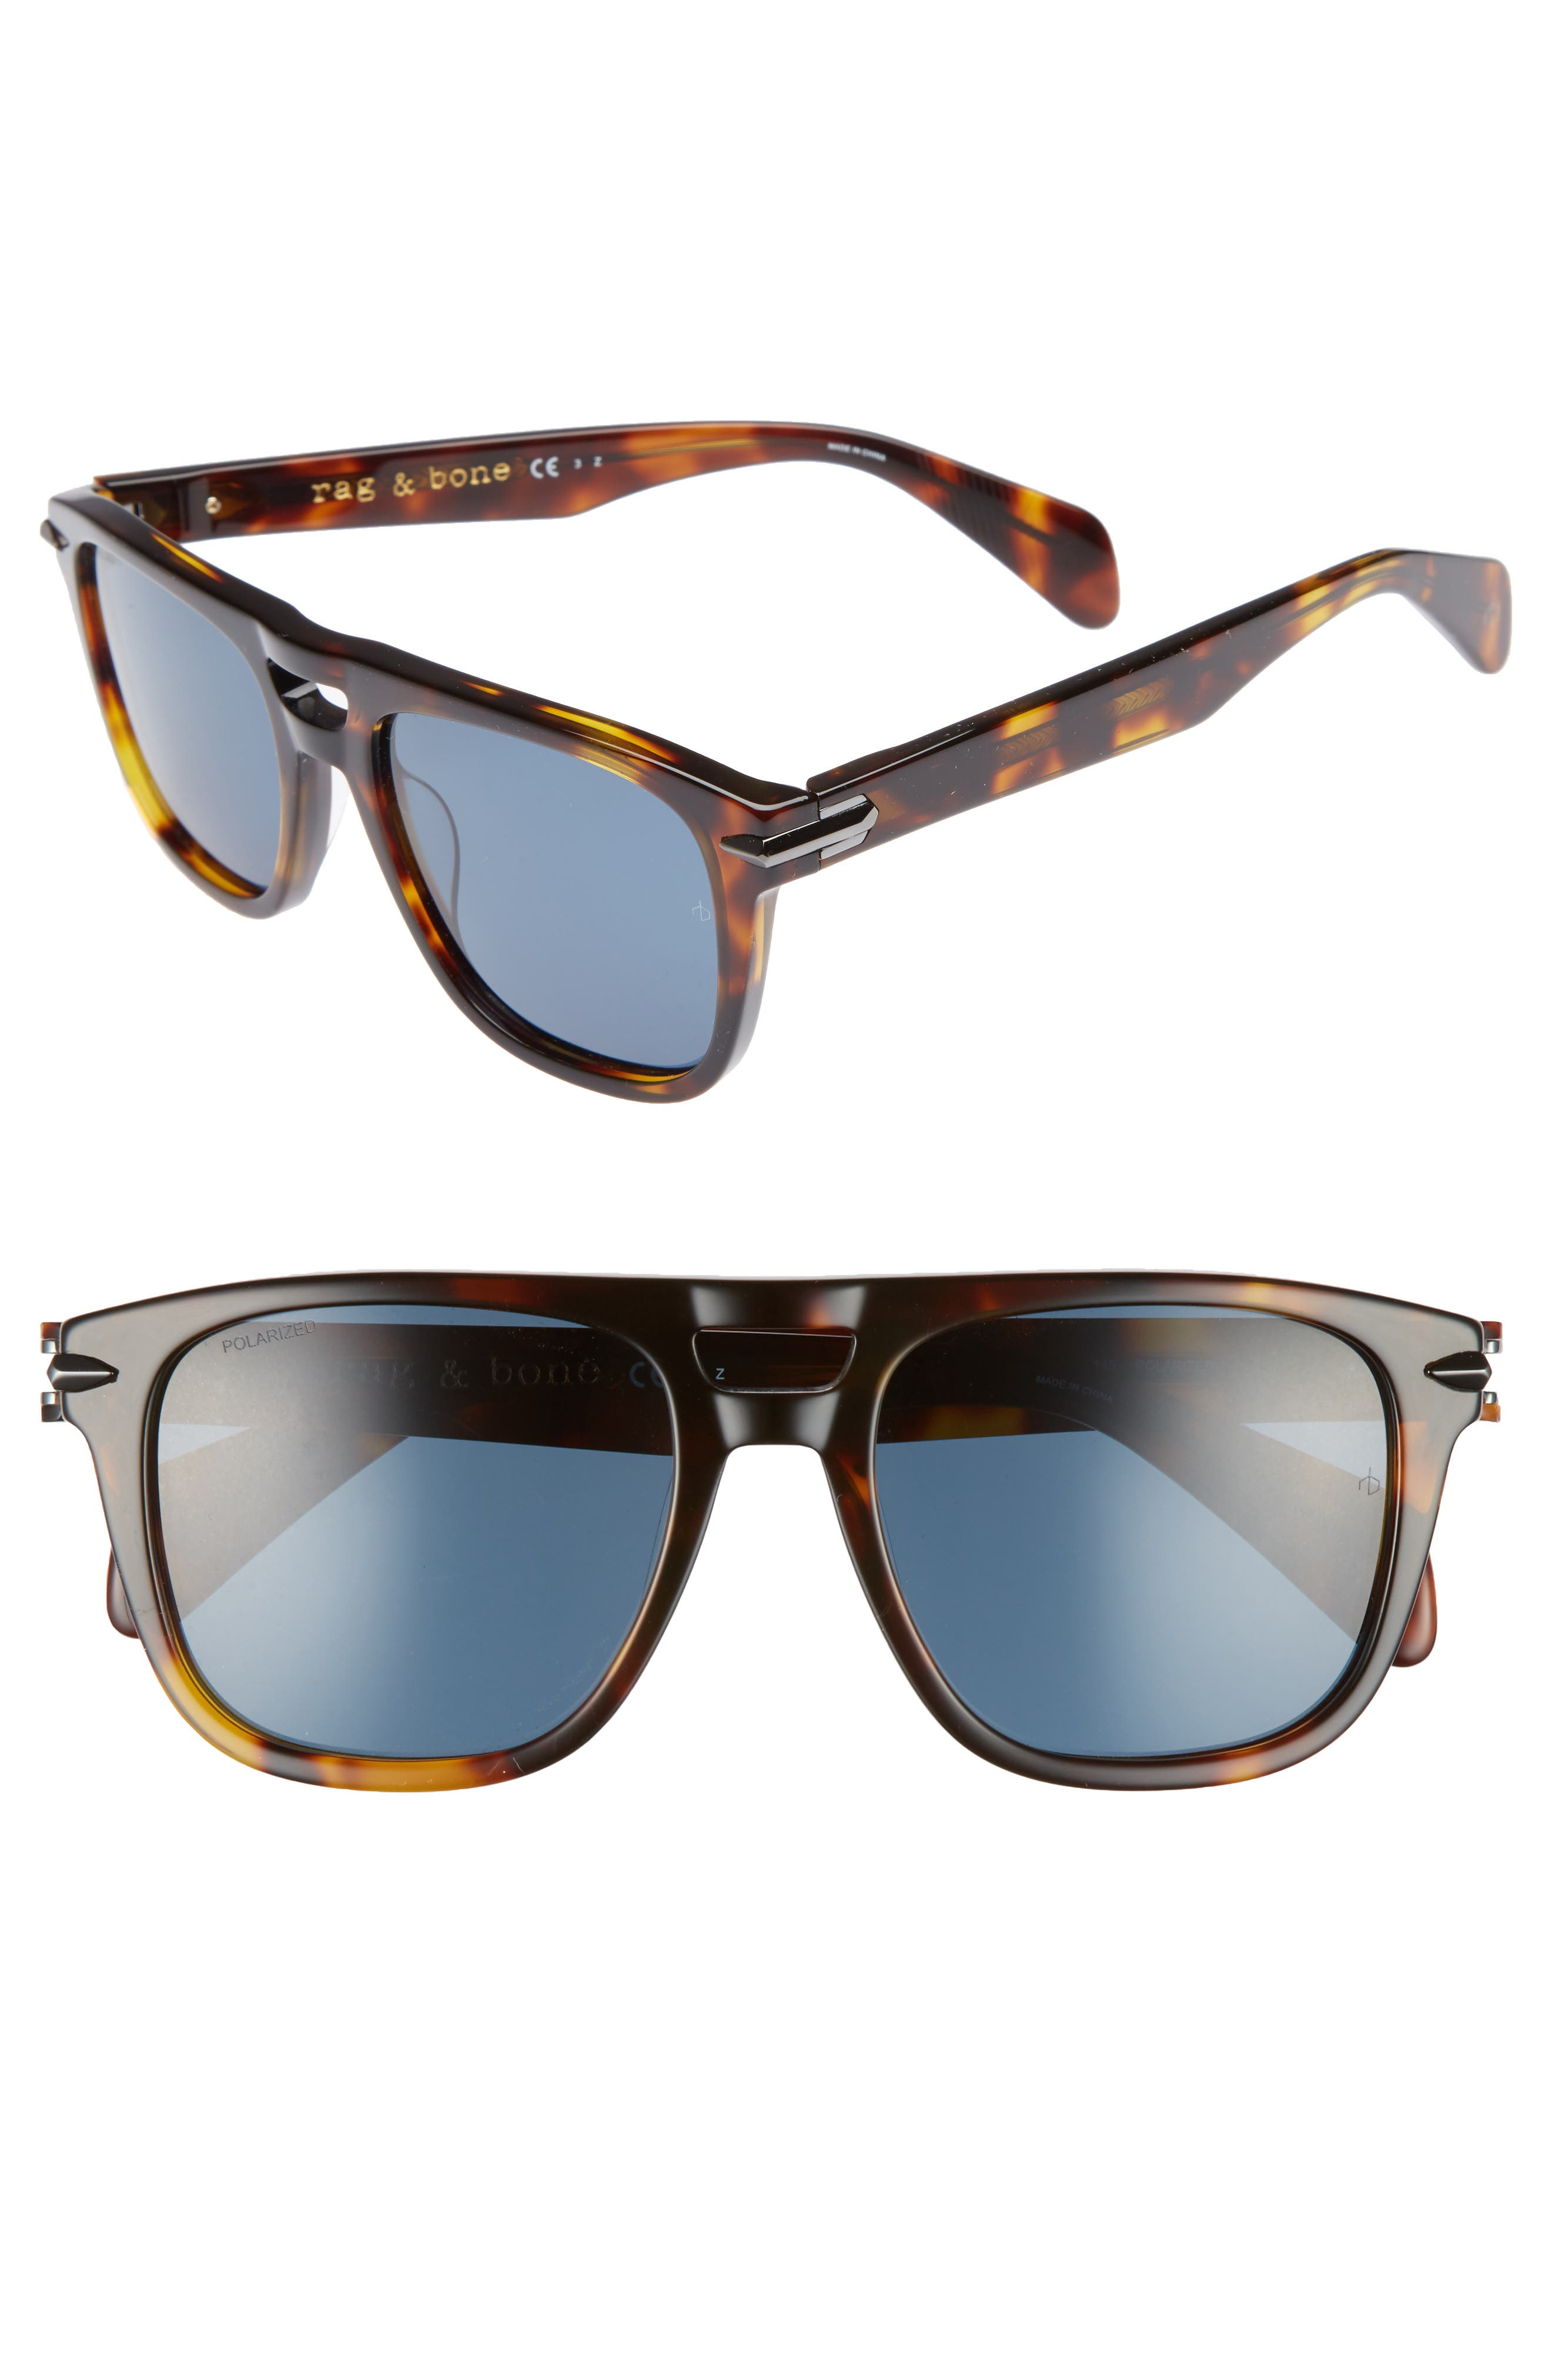 53mm Polarized Sunglasses,                             Main thumbnail 1, color,                             DARK HAVANA POLAR